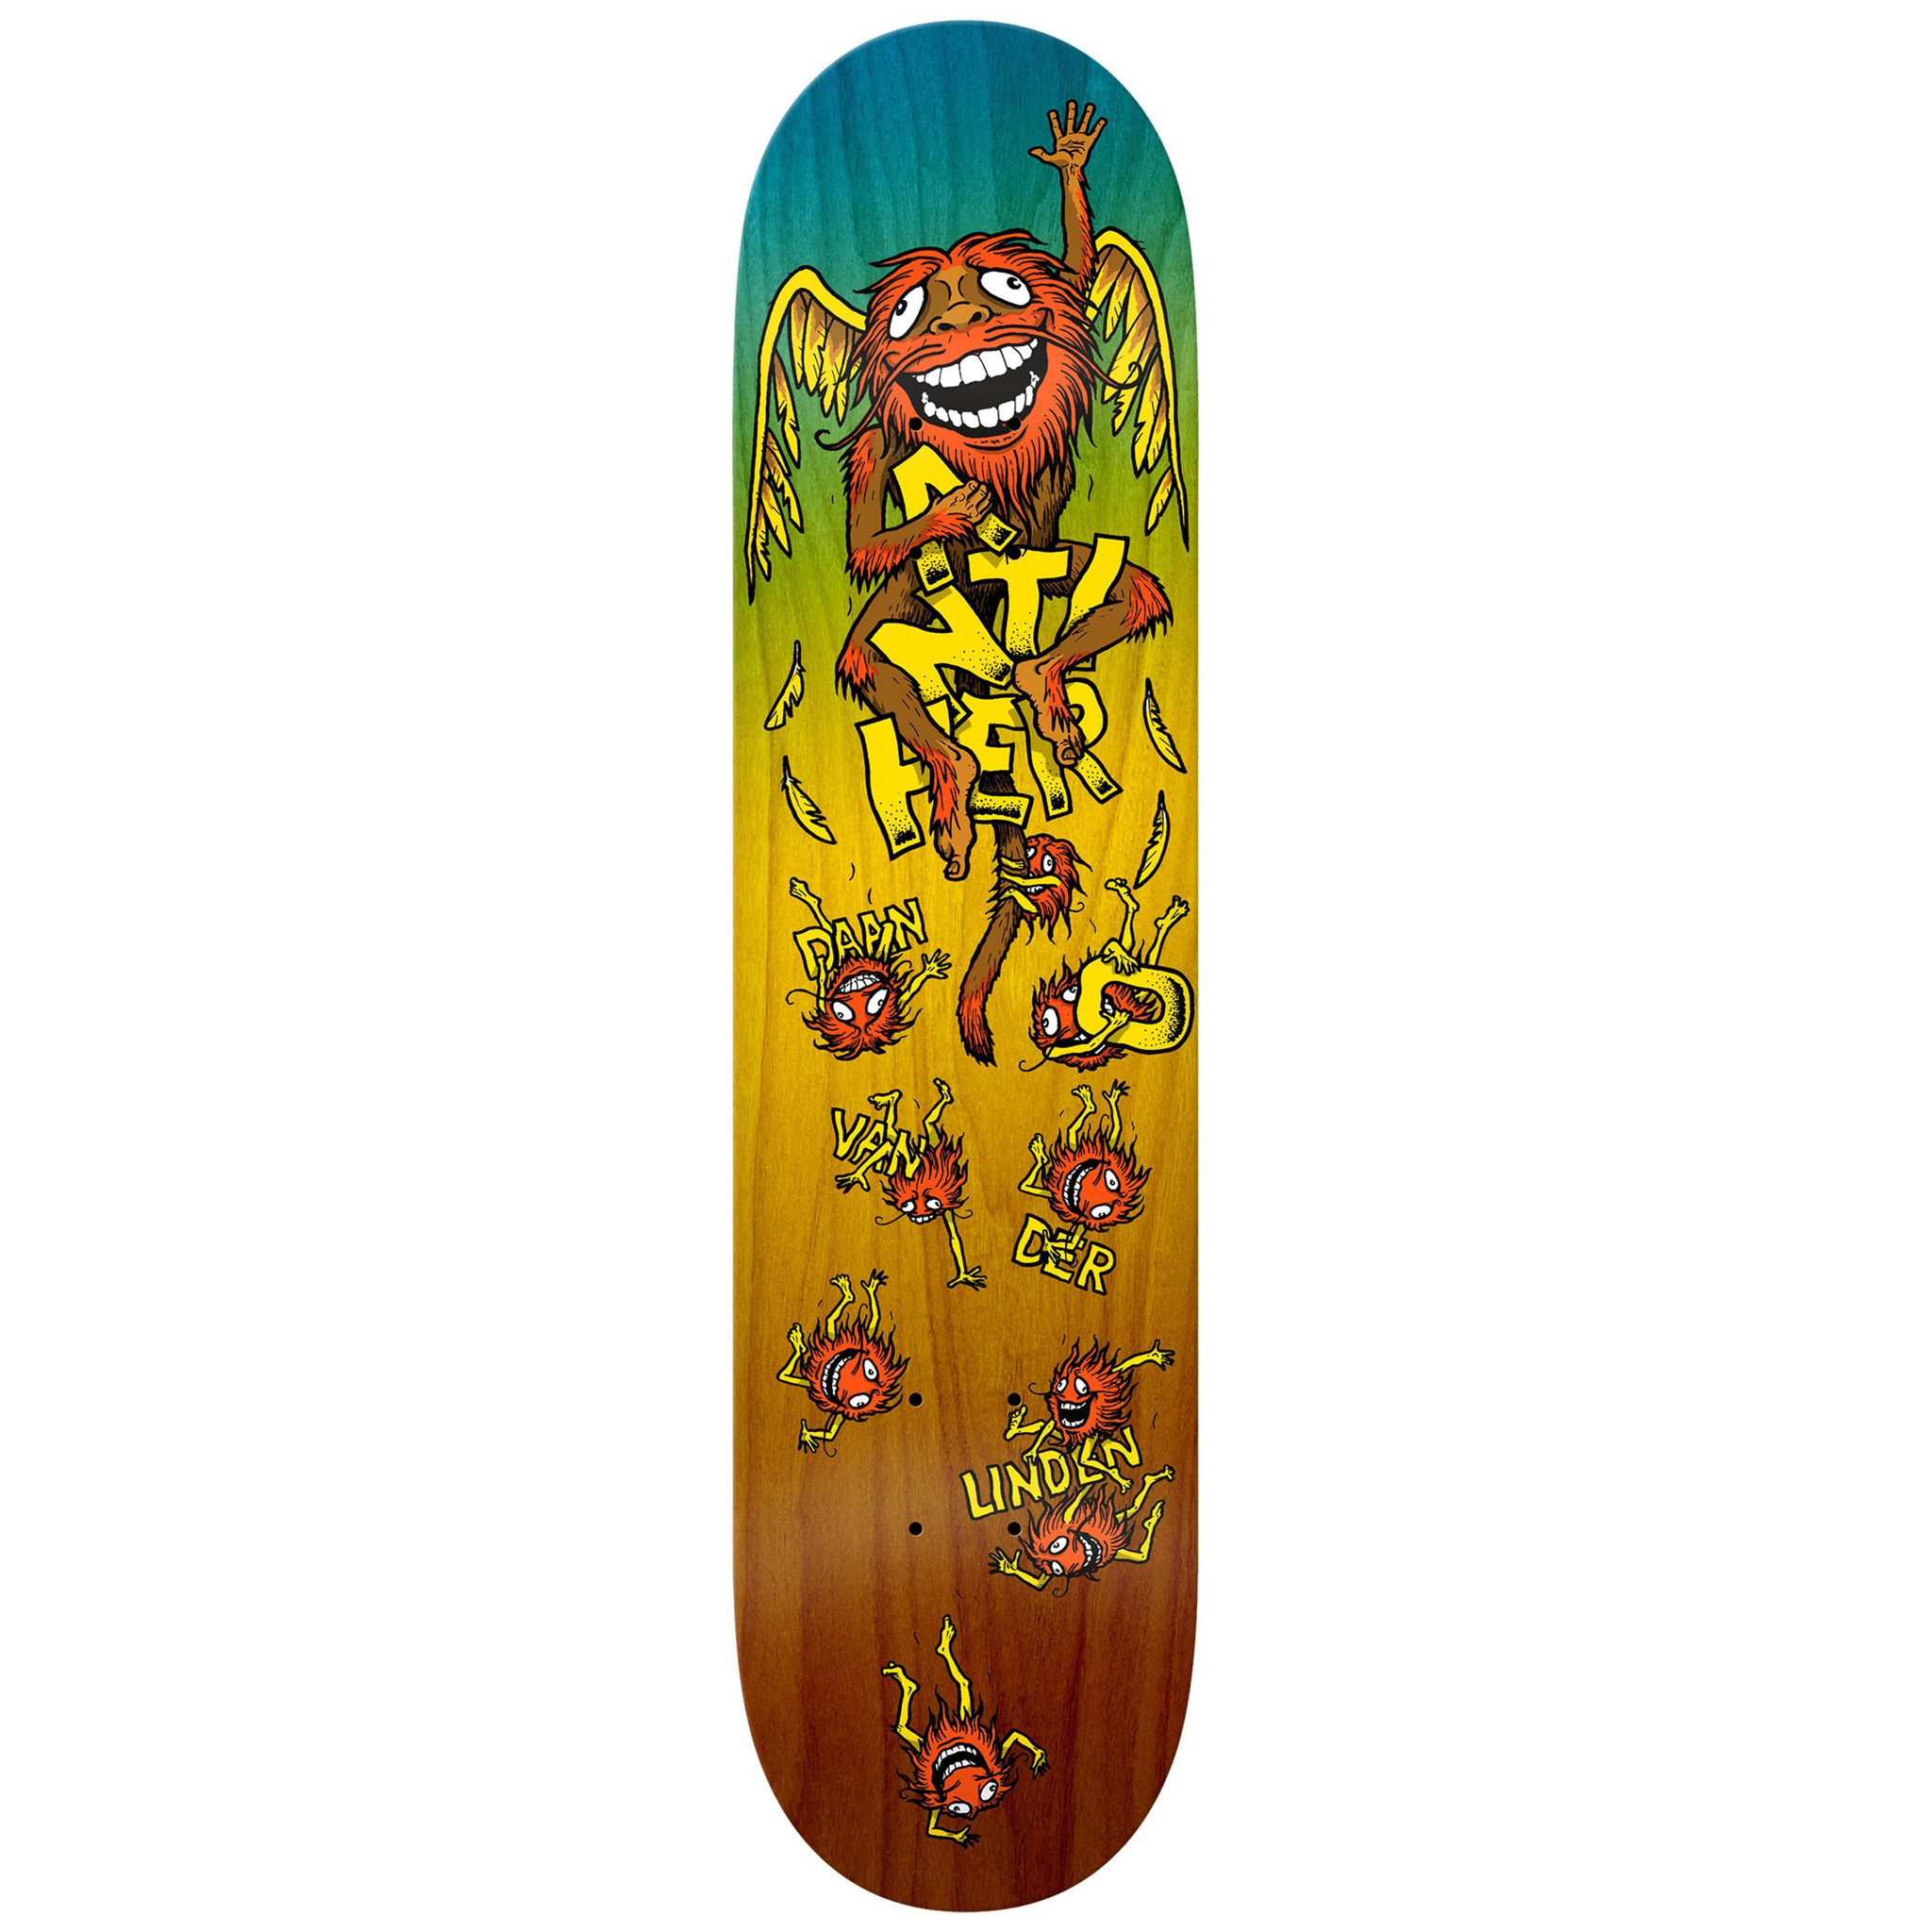 Anti-Hero Daan Van Der Linden 8-3/8 inch wide - Grimple Chimp